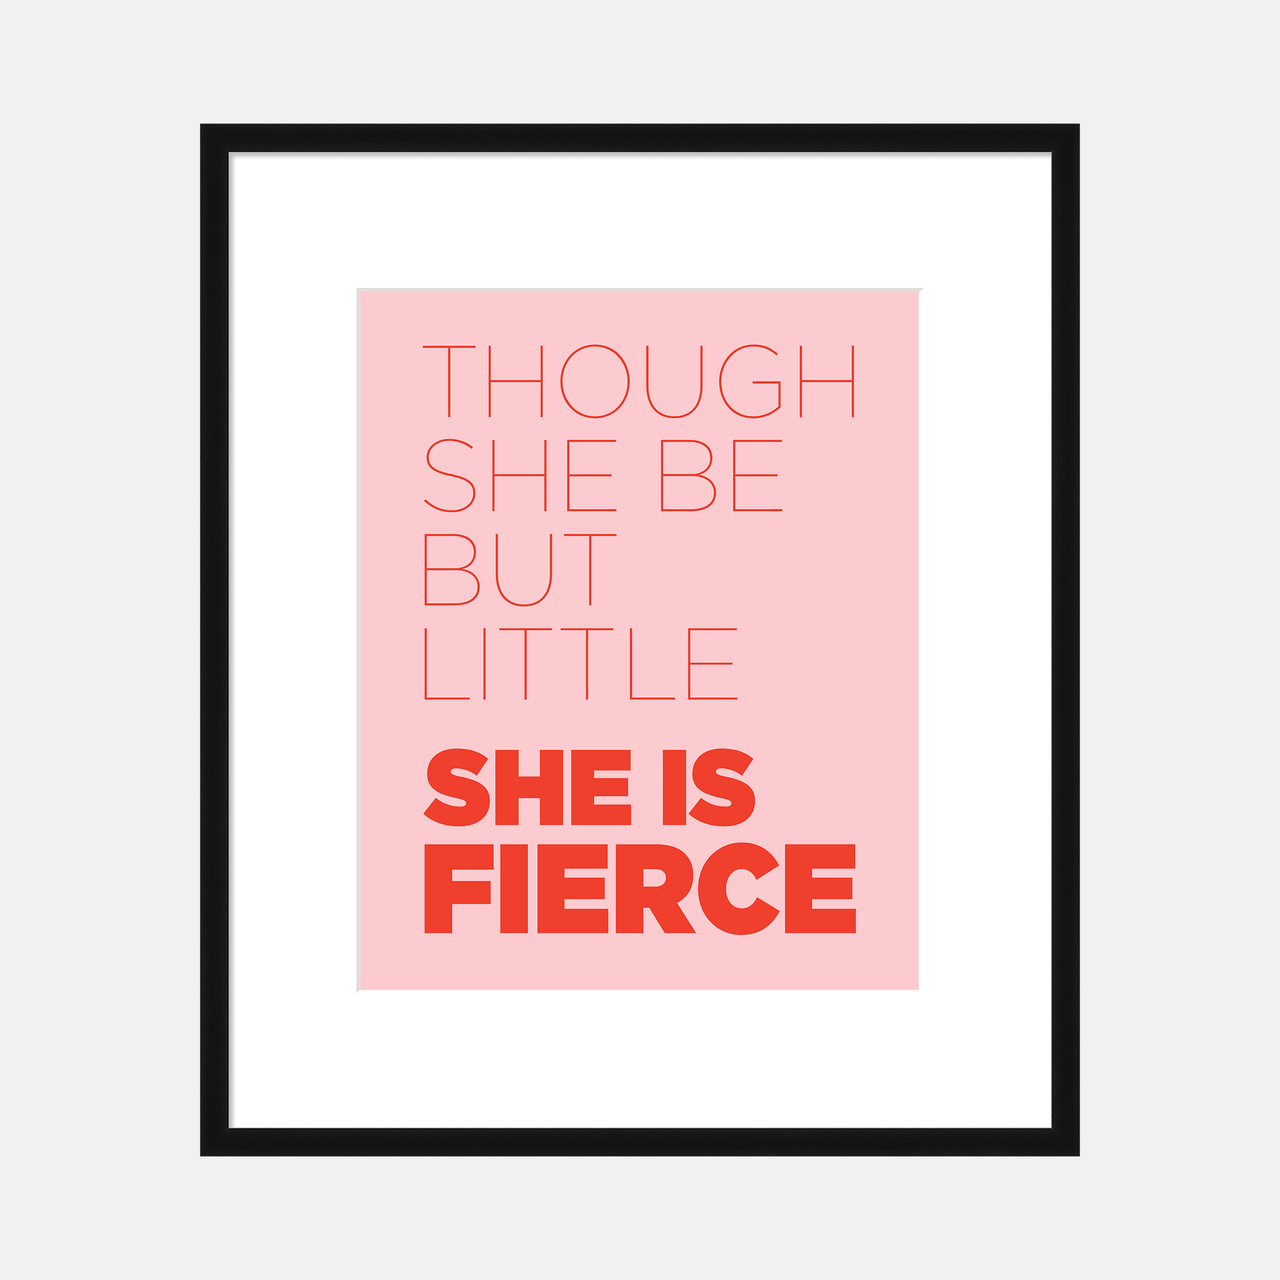 She-is-Fierce_Mercer-Slim_Mat_8x10_Mockup__10584.1525123719.jpg